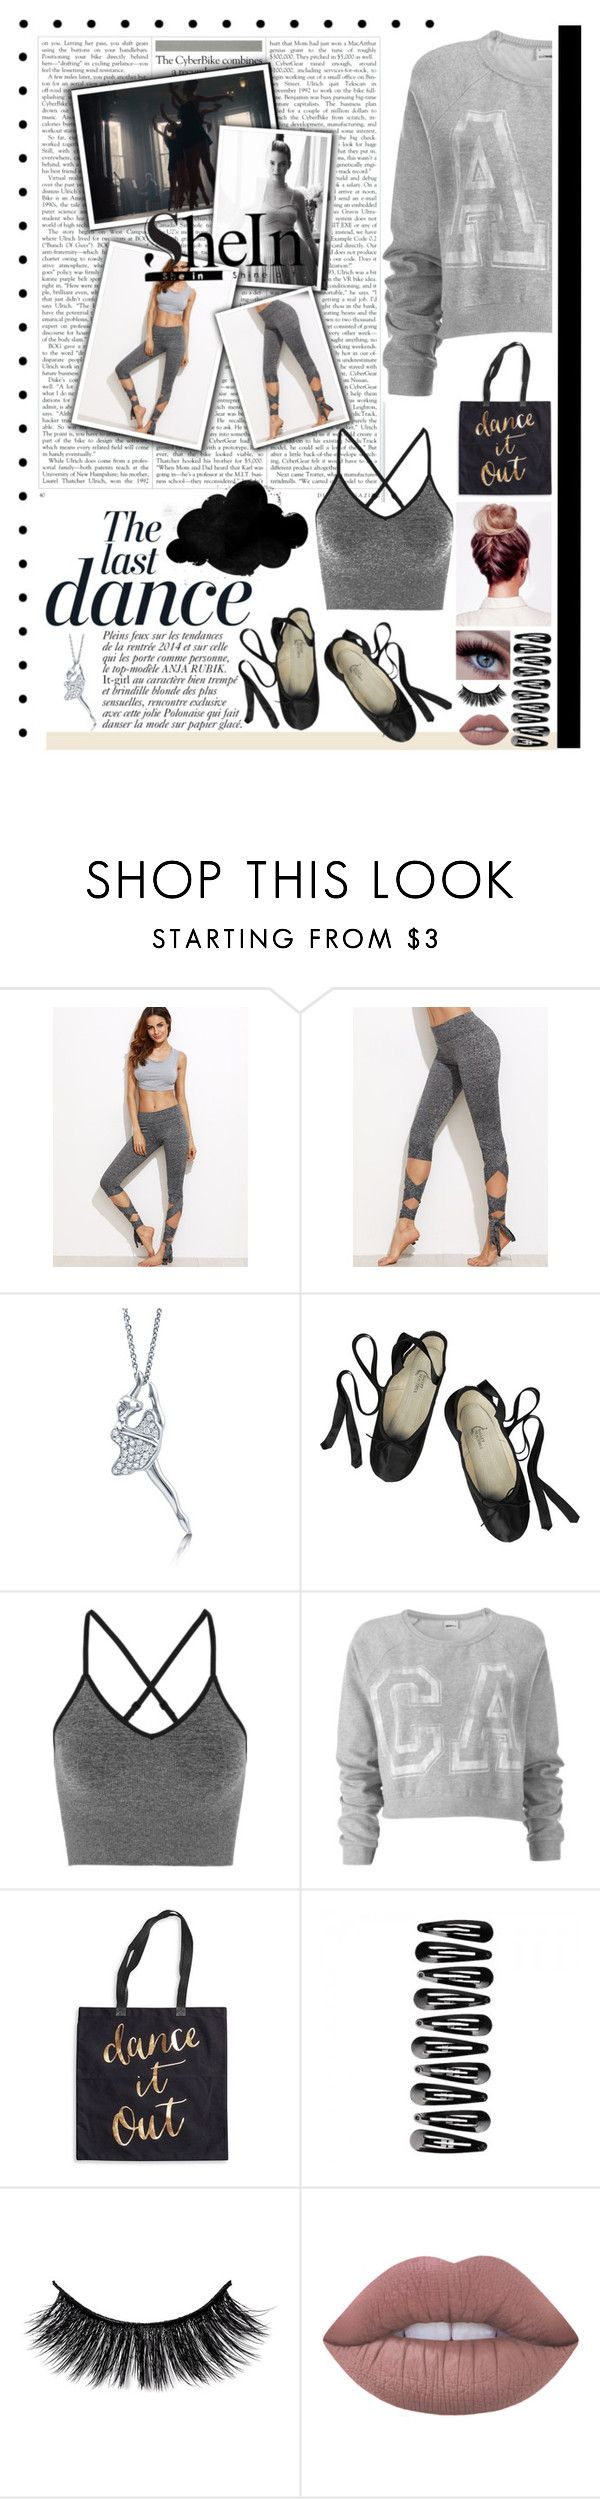 """D.A.N.C.E"" by rhiannonpsayer on Polyvore featuring Anja, BERRICLE, Ballet Beautiful, Ivy Park, Lovisa, Rosanna and Lime Crime"